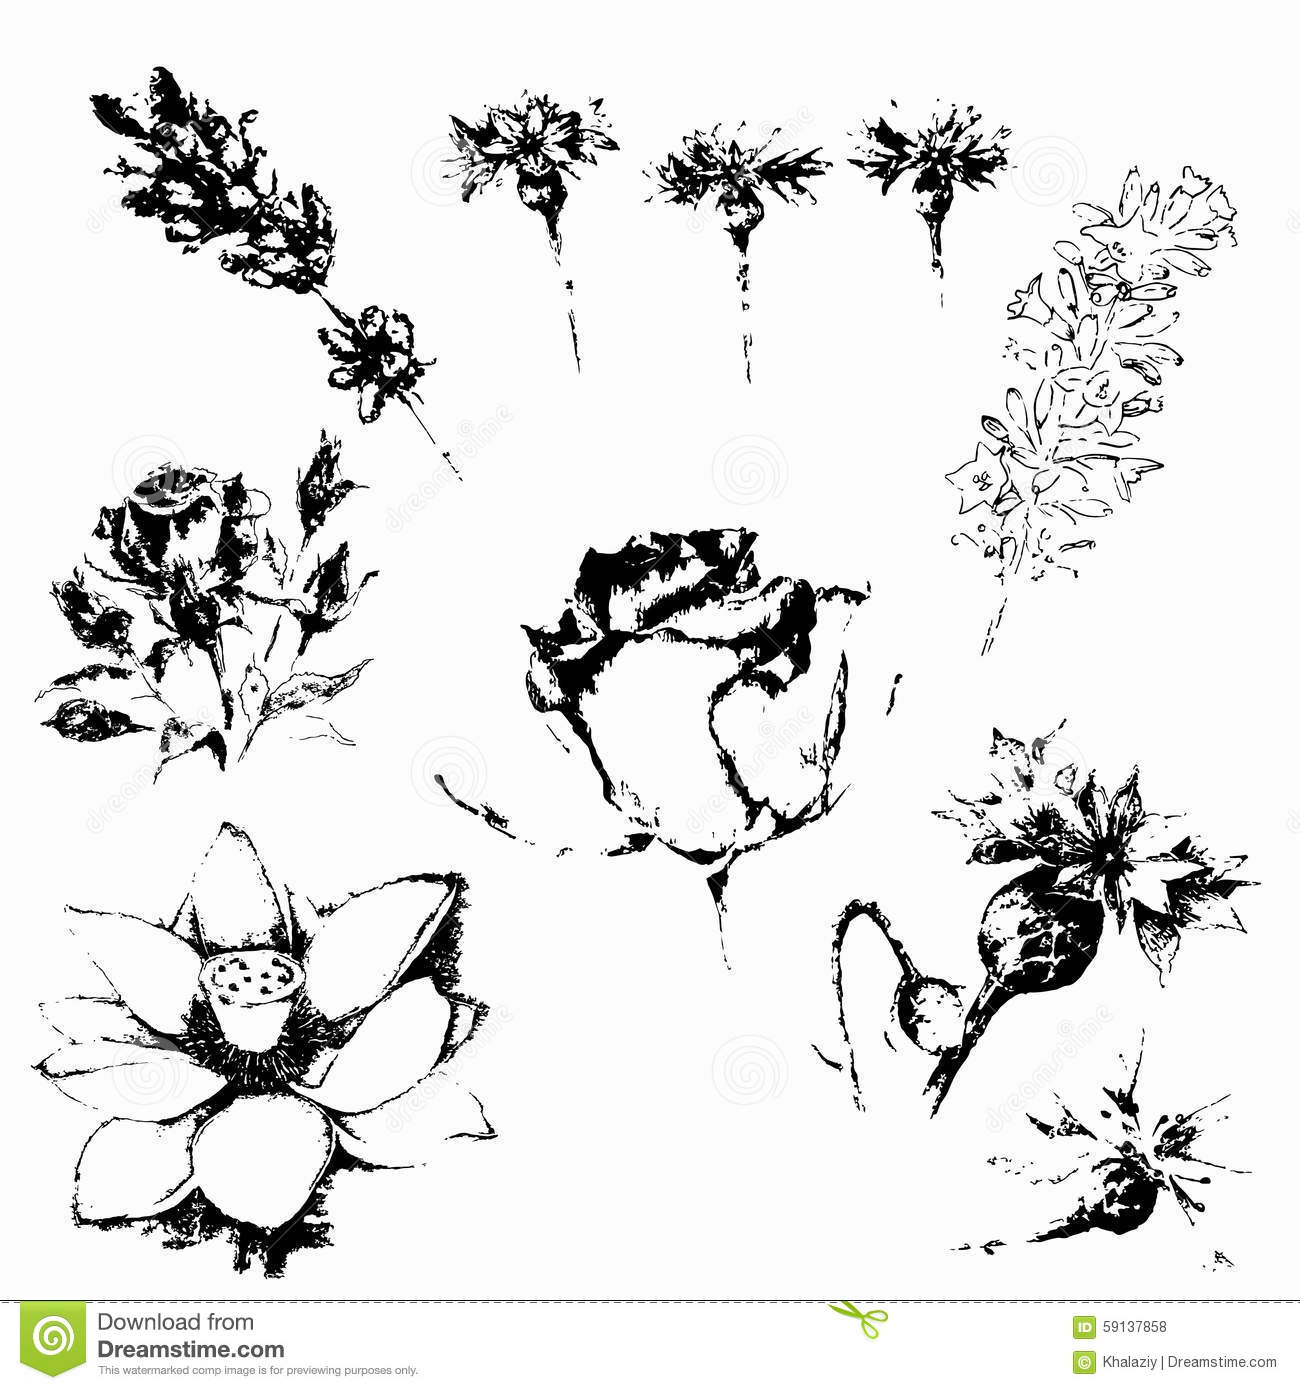 Botanical illustration black and white - photo#15